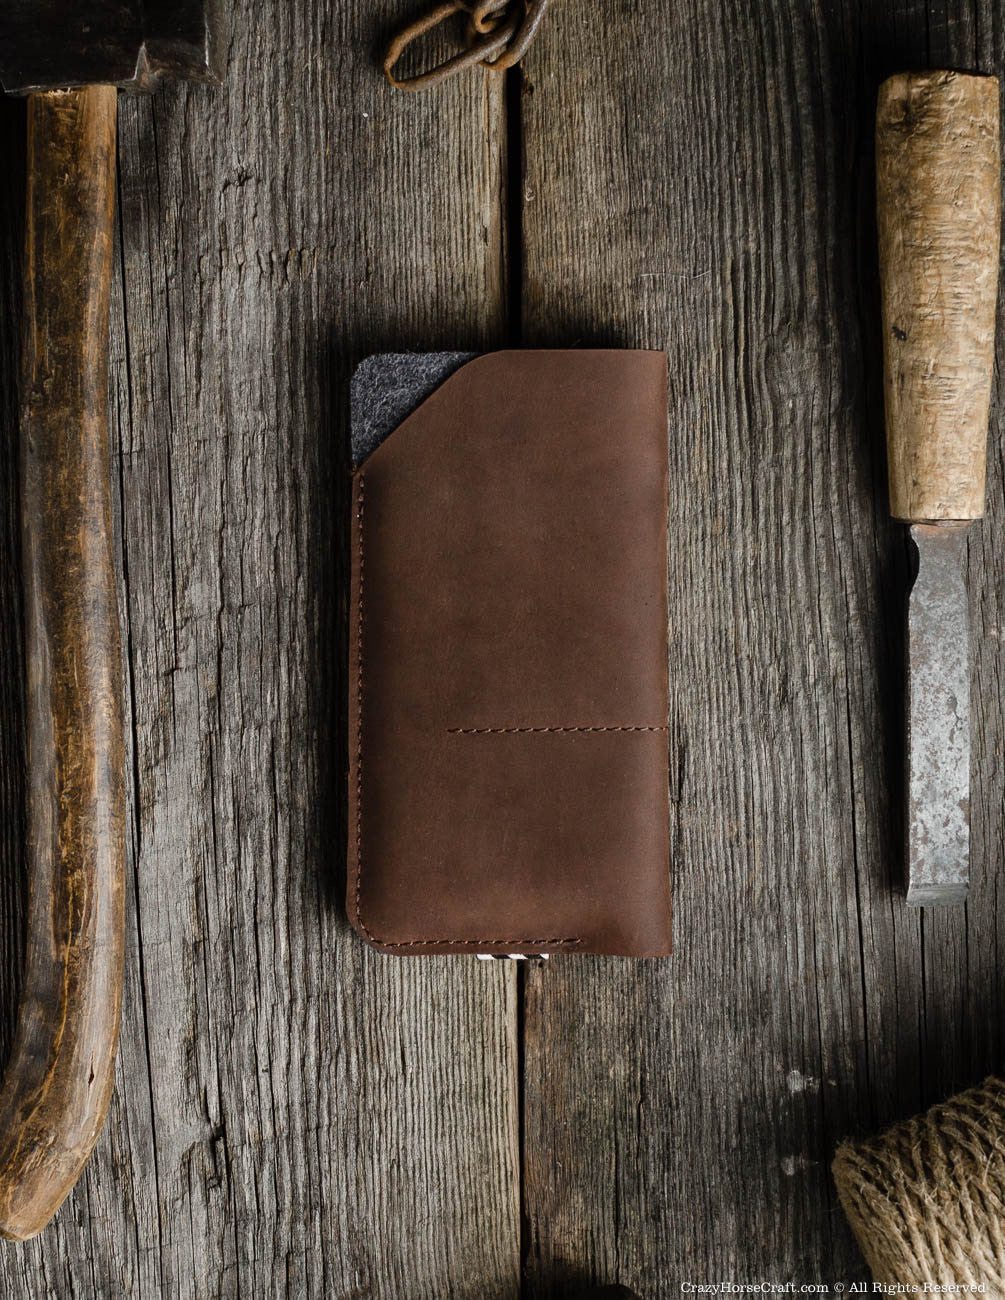 Leather iphone 8 plus case sleeve, brown, felt, back, awesome iPhone Xs case, iPhone Xr, iPhone XS Max cover, 2018 iPhone Xs cool, unique style case